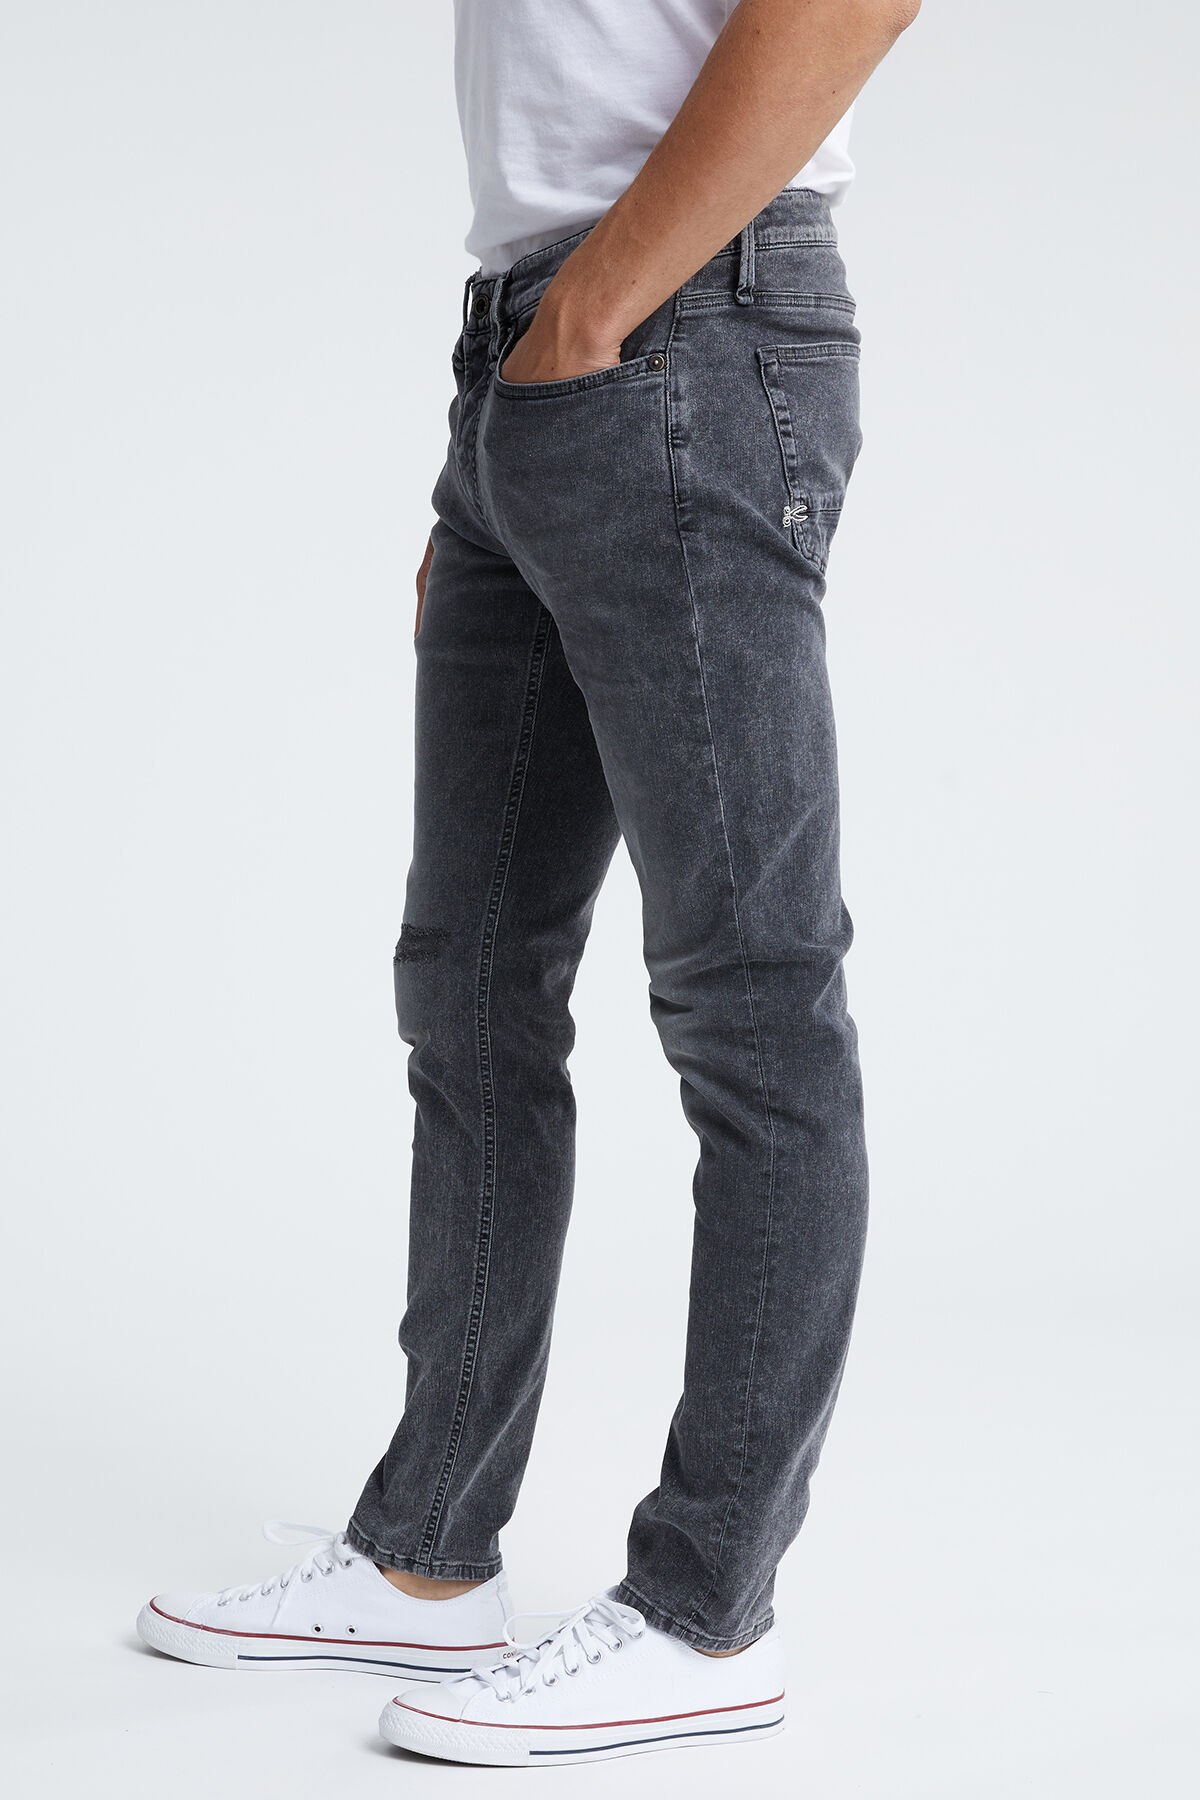 BOLT Three-Year Grey Denim - Skinny Fit